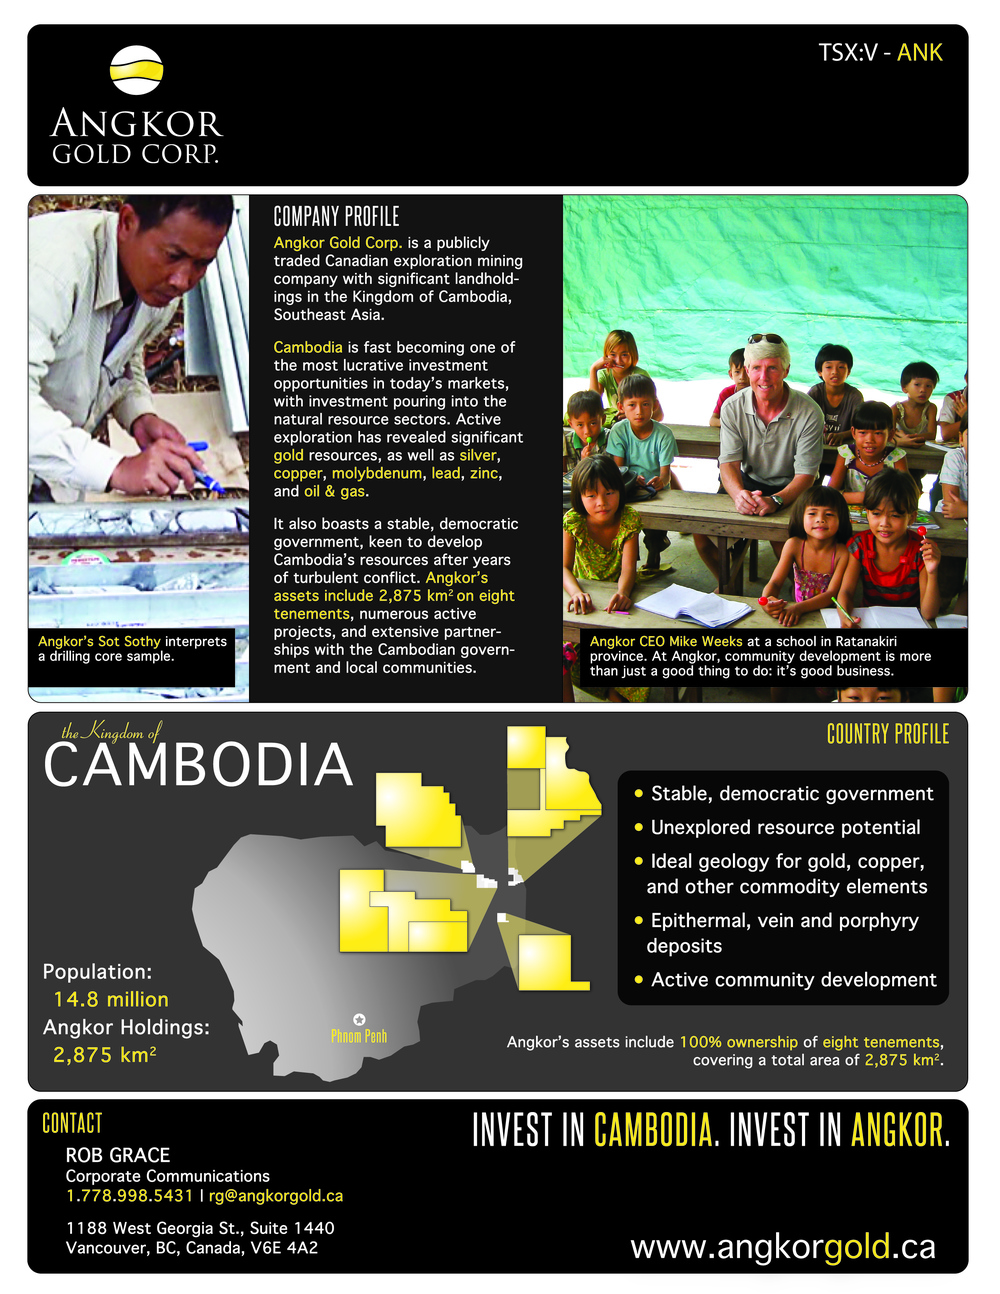 Brochure Design: Angkor Gold Corp.